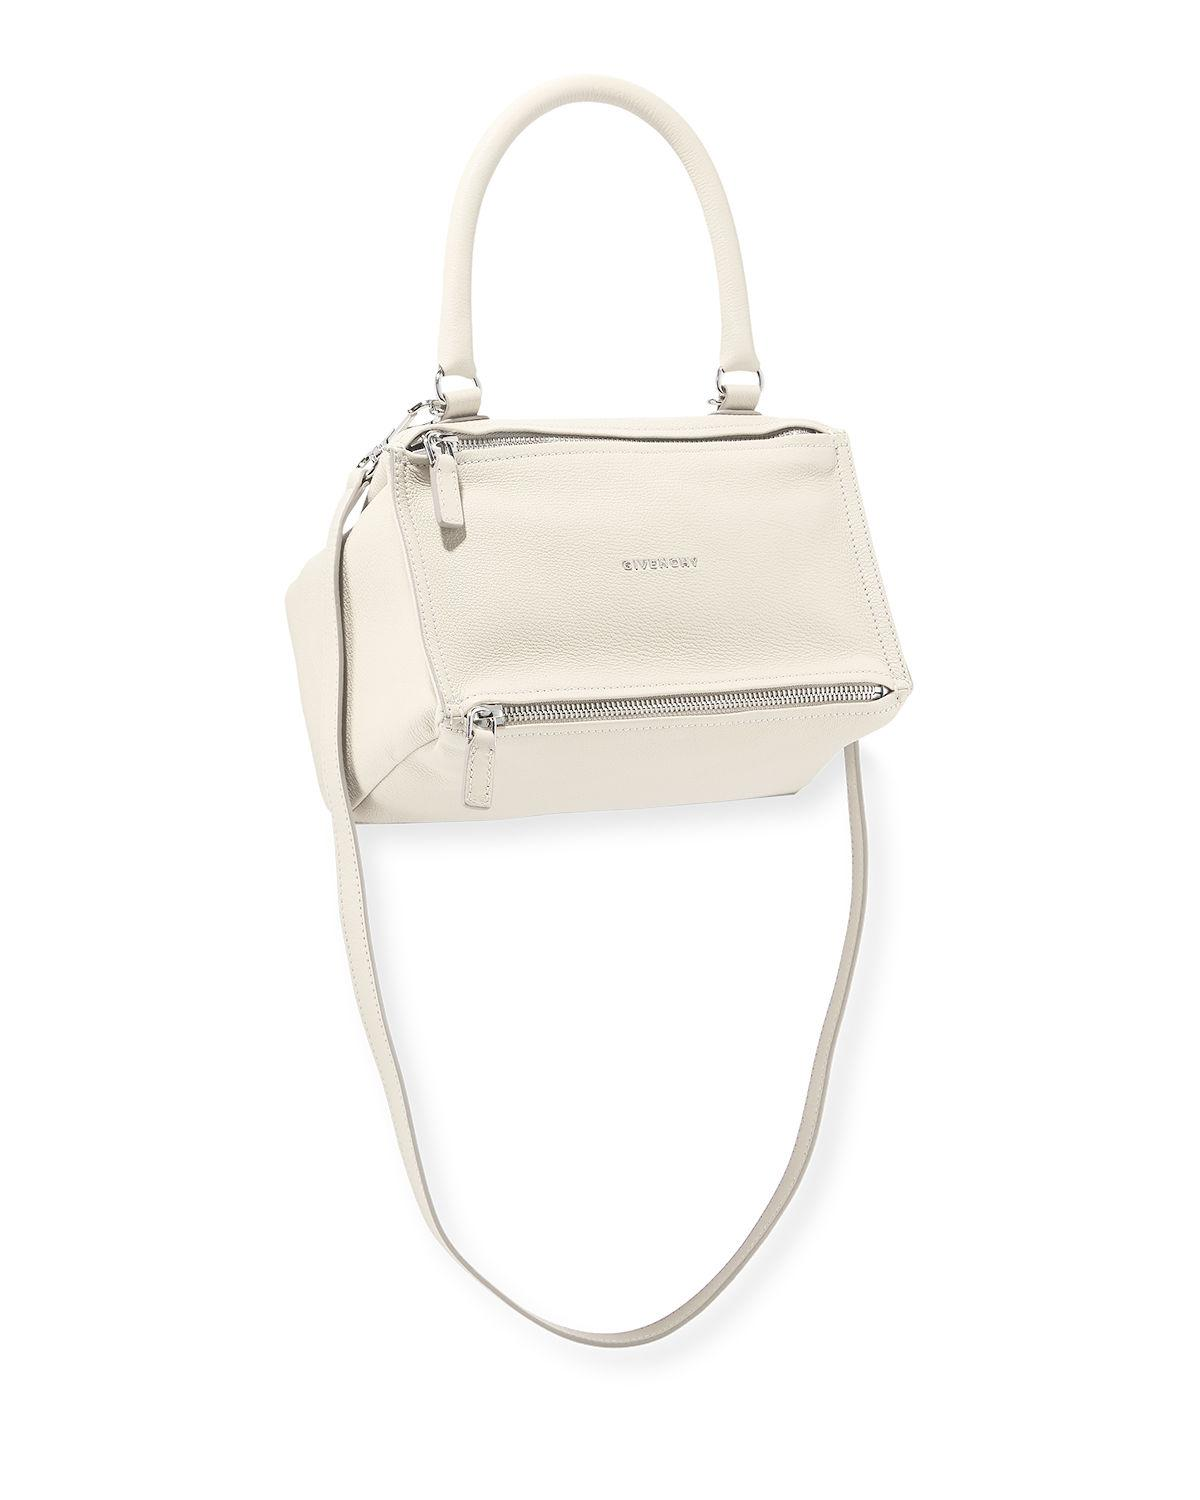 0a151f002880 Lyst - Givenchy Pandora Small Leather Shoulder Bag in White